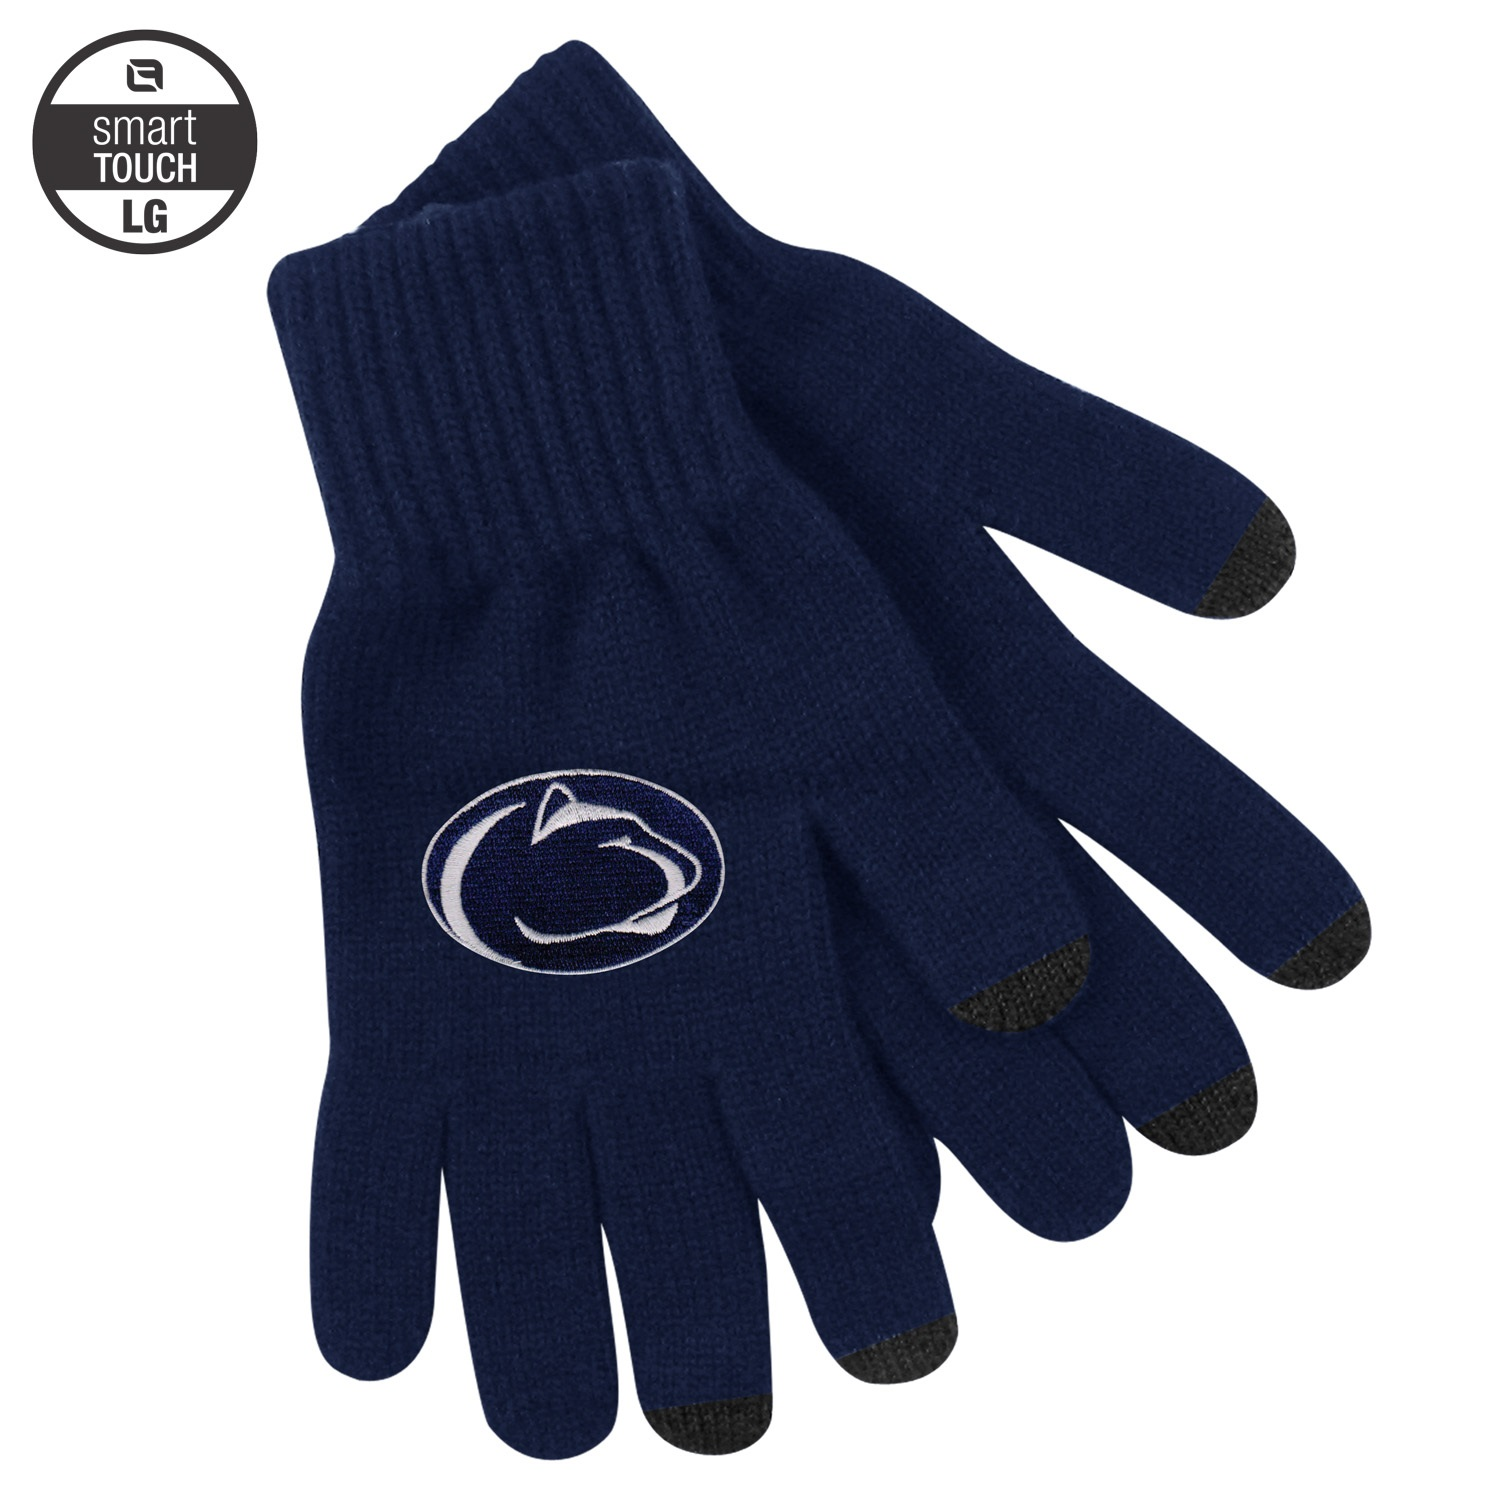 Penn State University Smart-Touch Gloves by